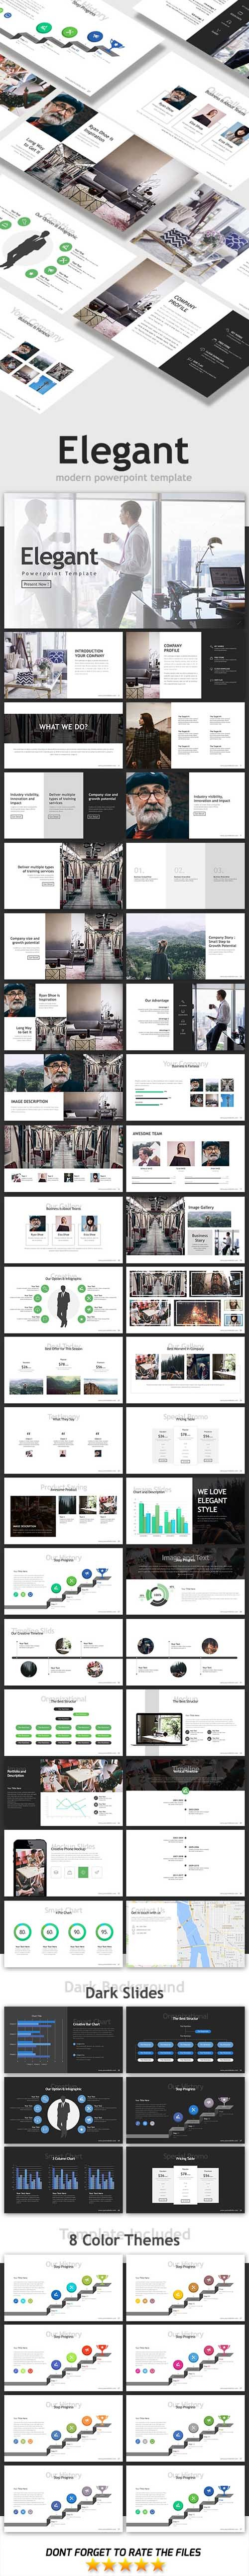 Elegant Powerpoint Template 19930918